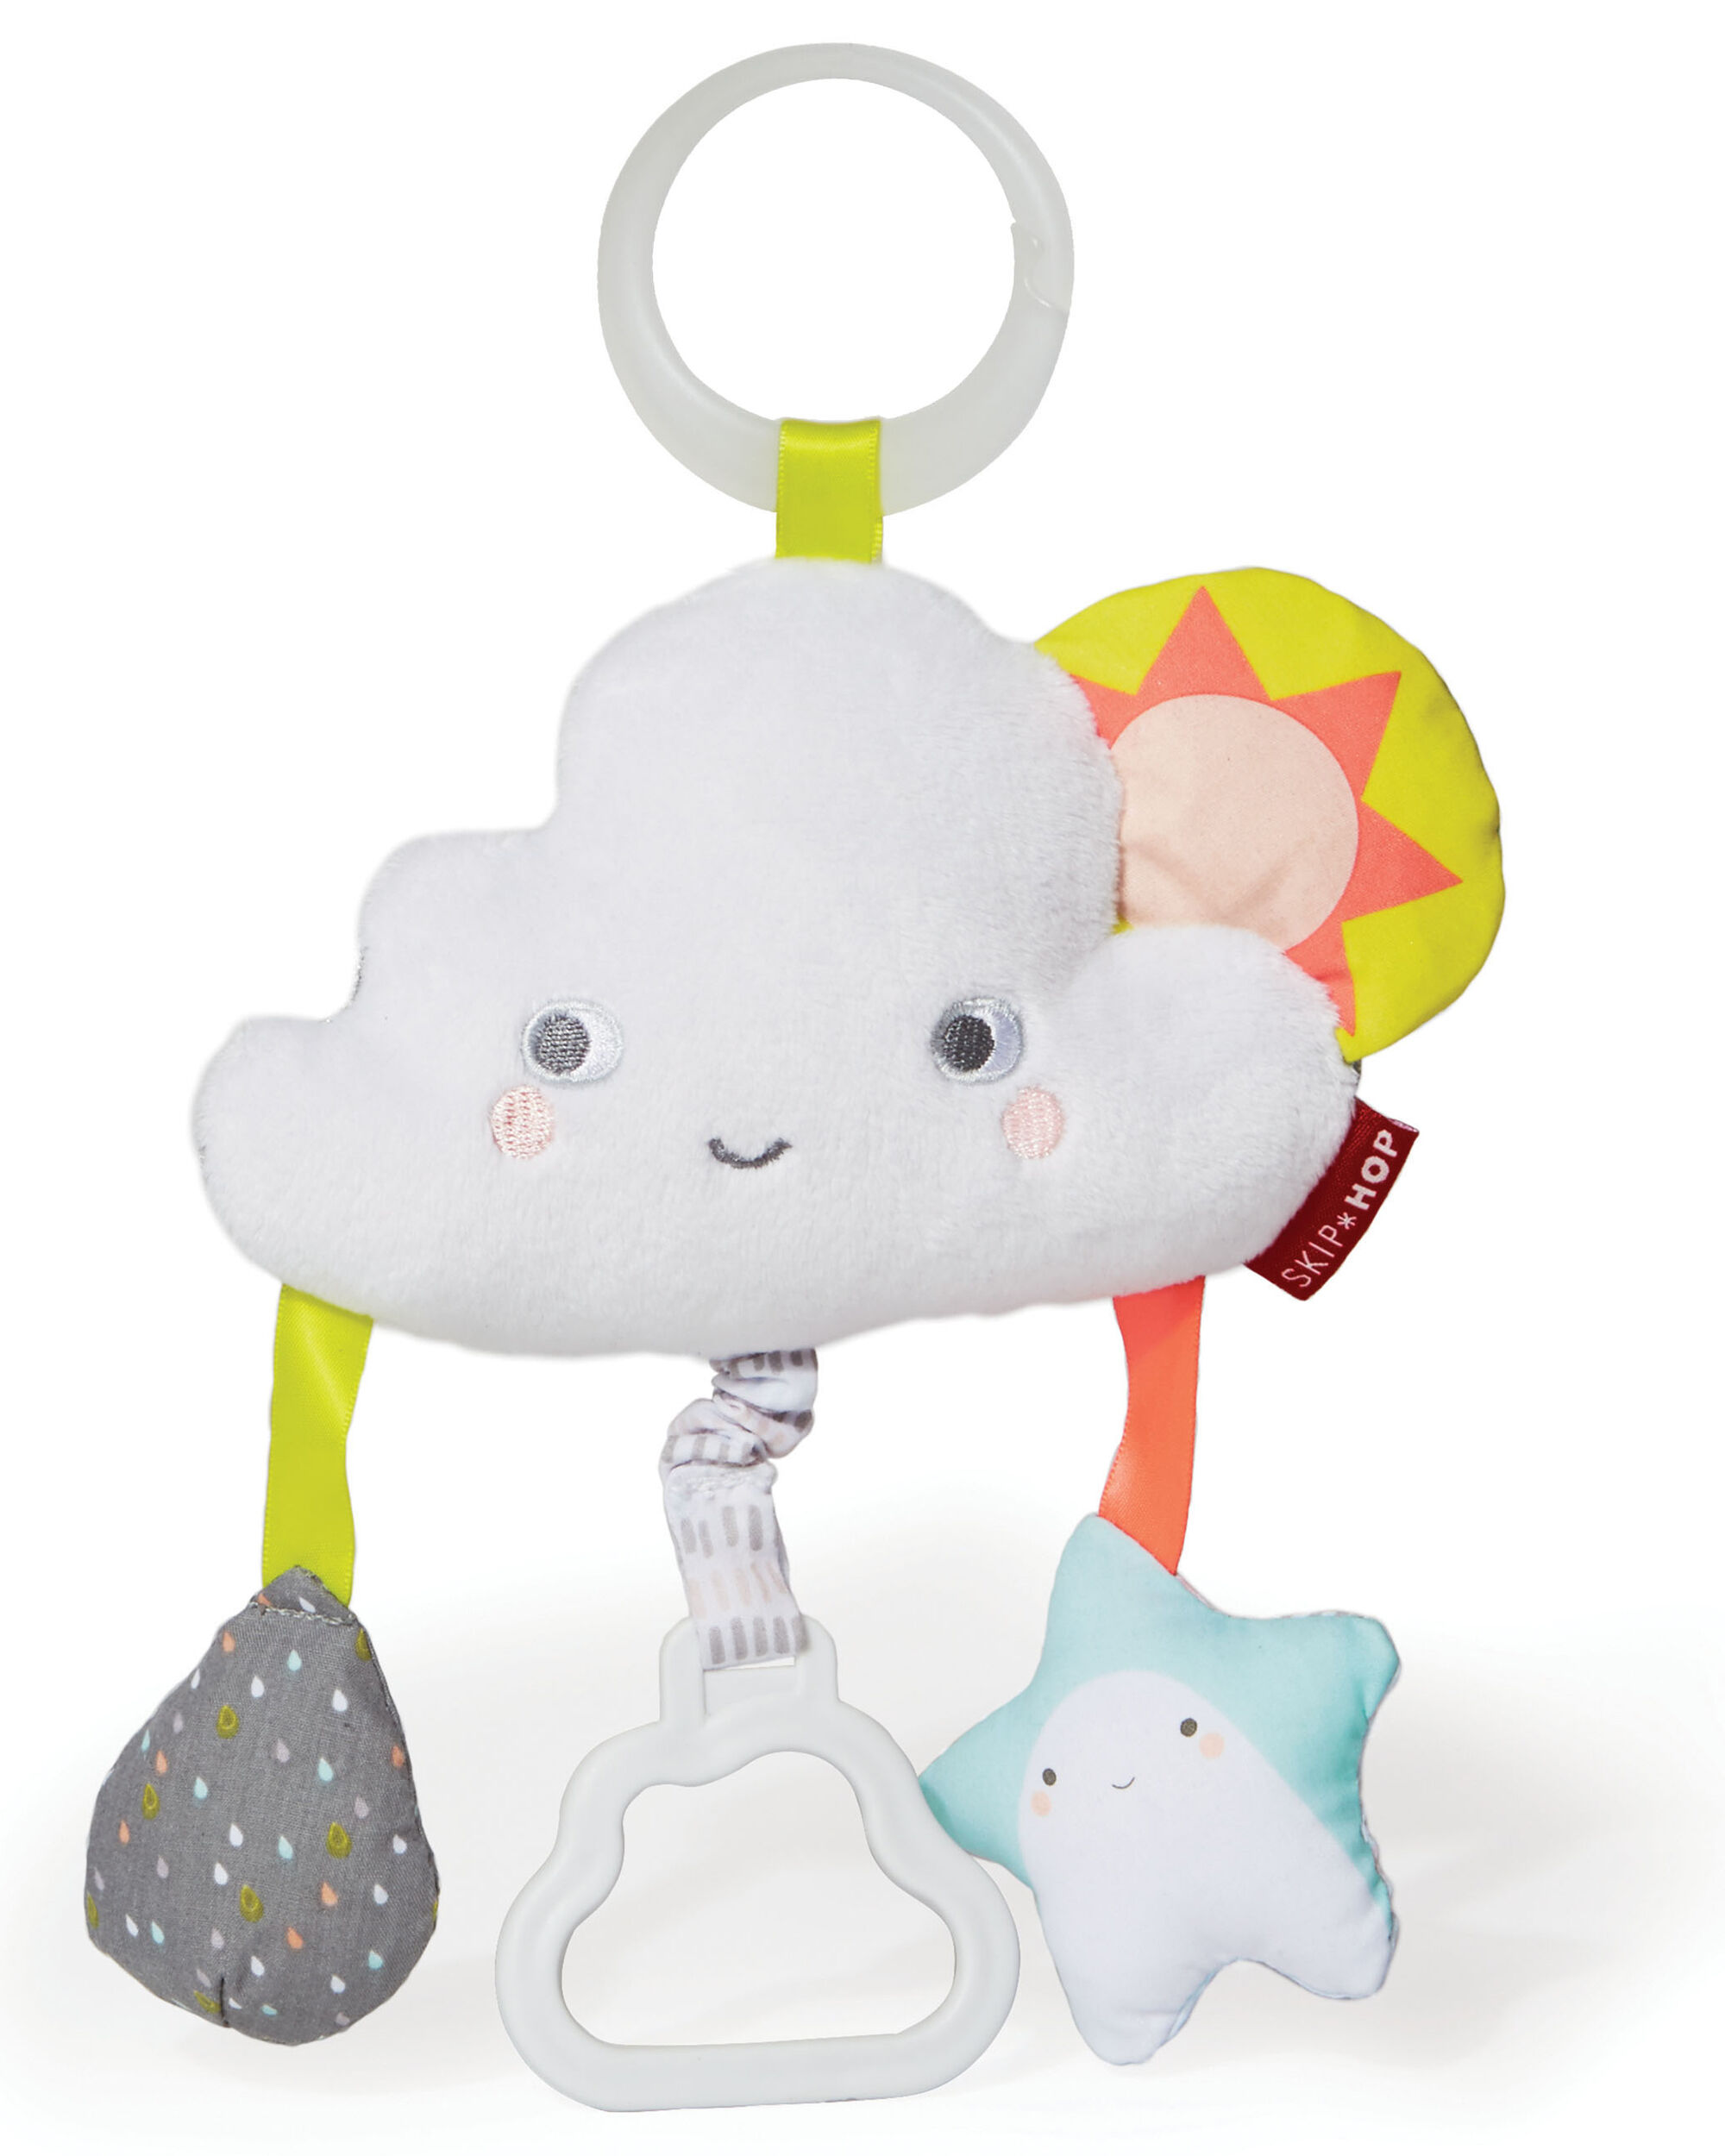 Carters Silver Lining Cloud Jitter Stroller Baby Toy